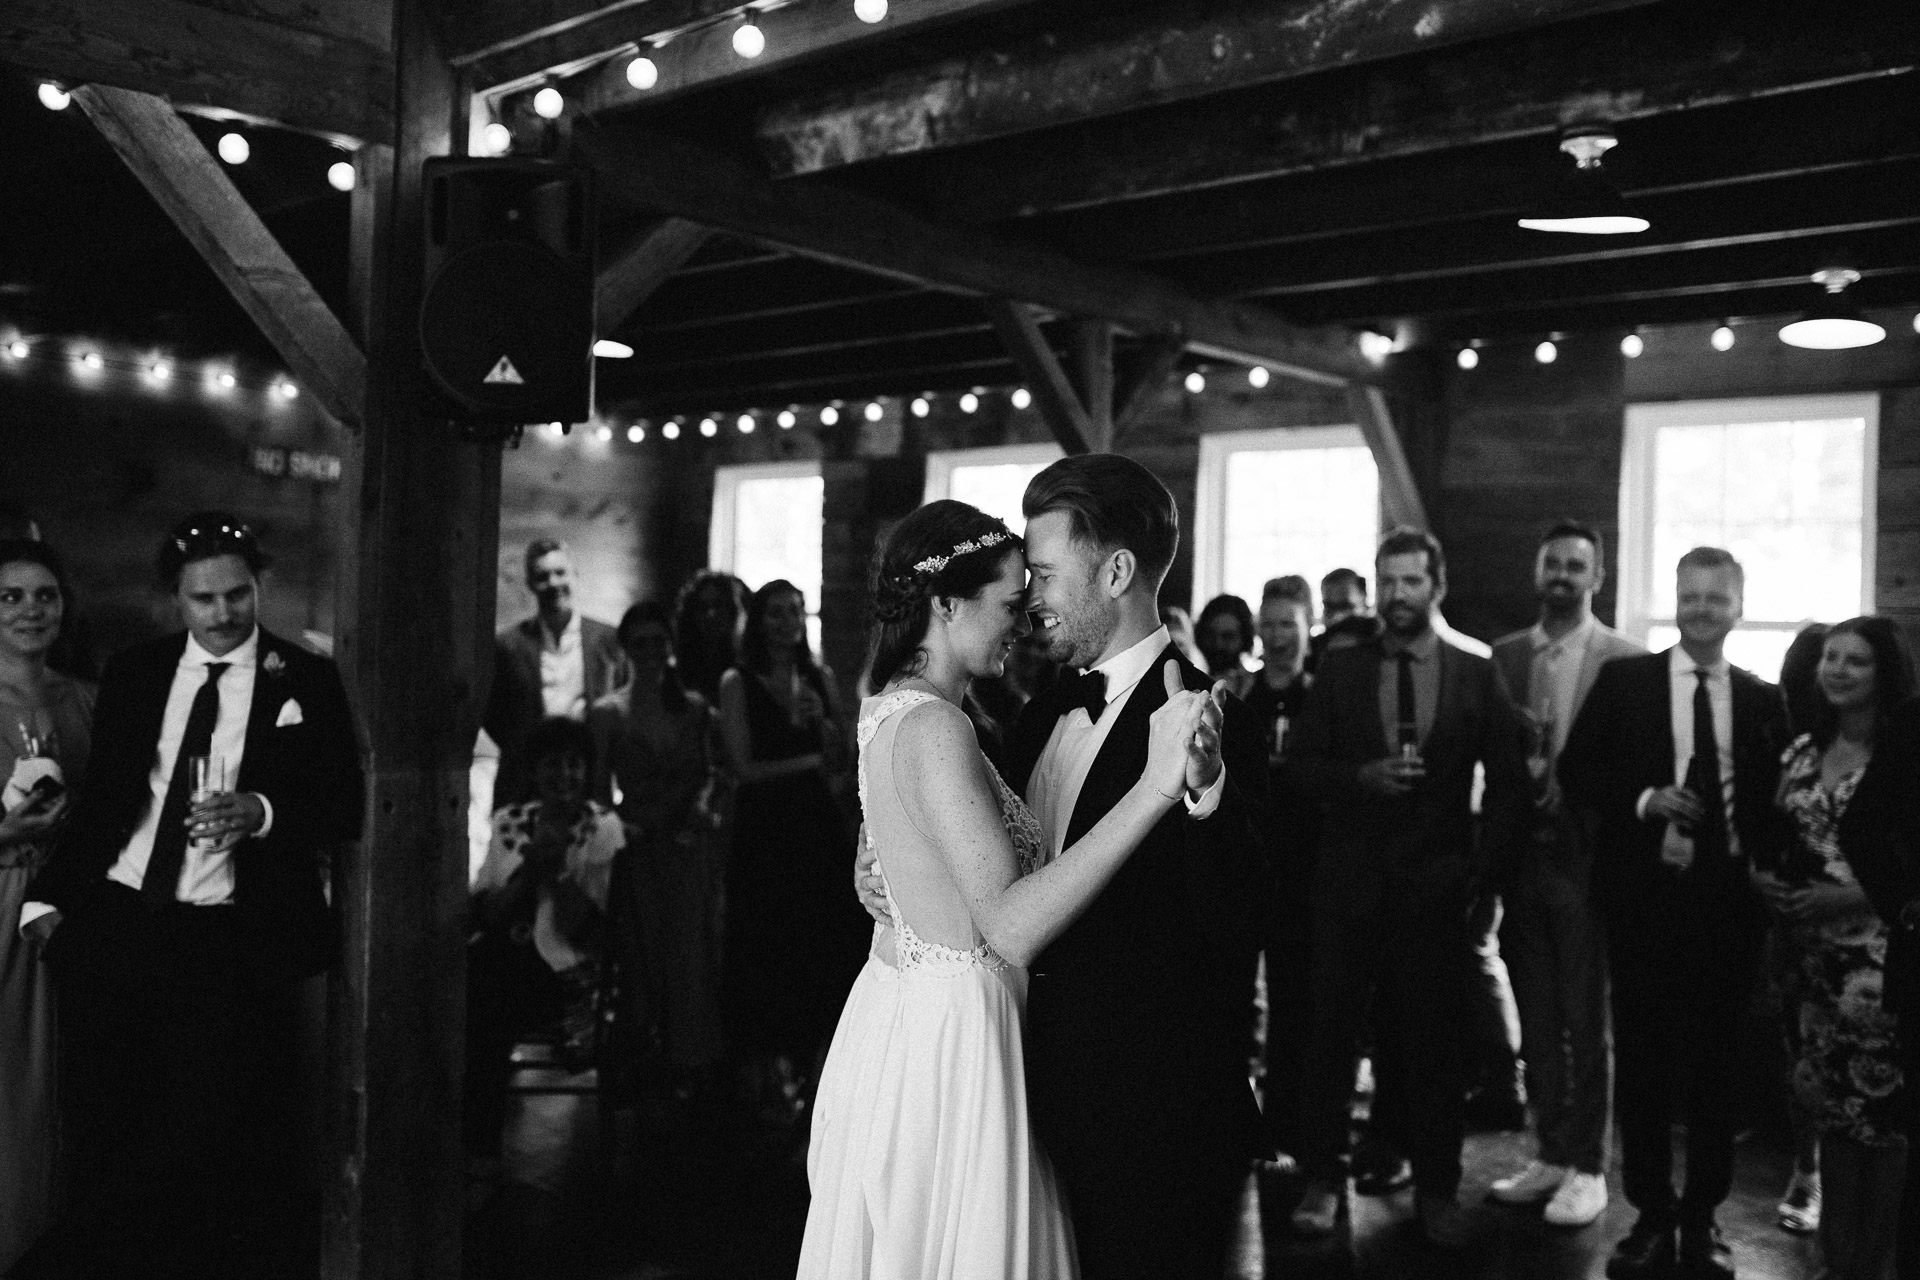 Roxbury Barn Wedding in The Catskills Mountains by Jean-Laurent Gaudy Photography